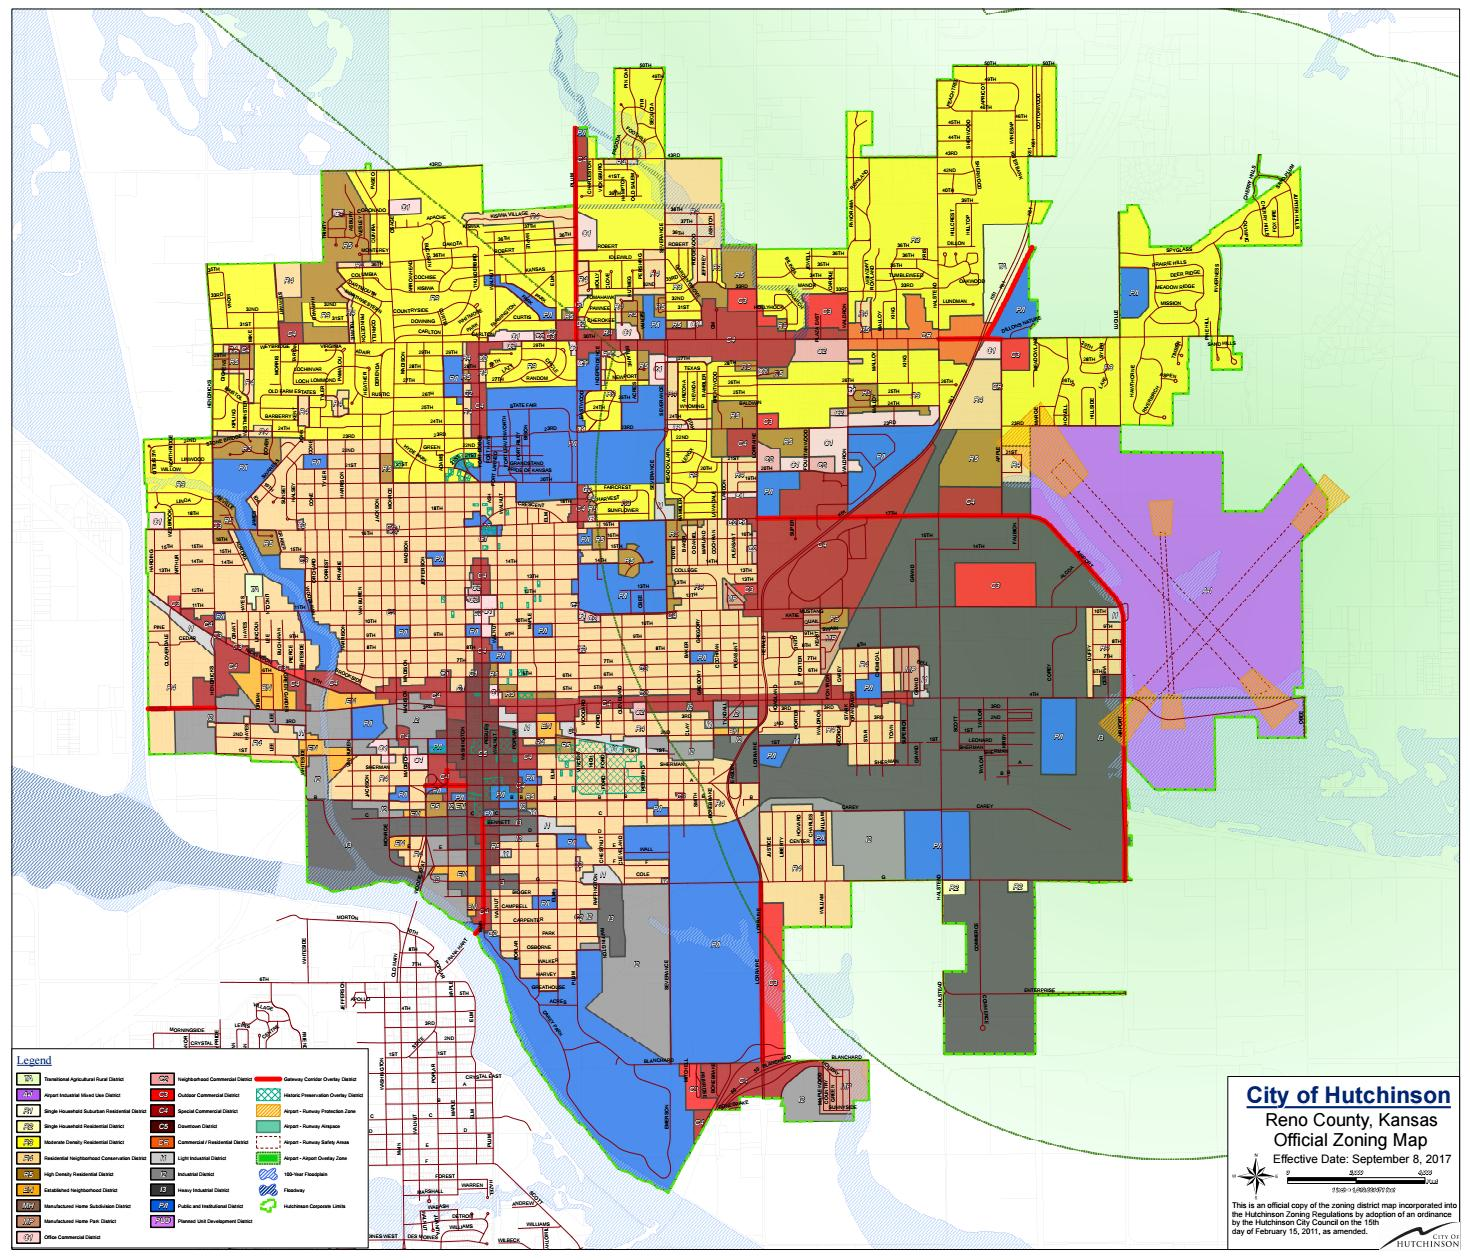 Hutchinson Official Zoning Map by City of Hutchinson Planning ... on